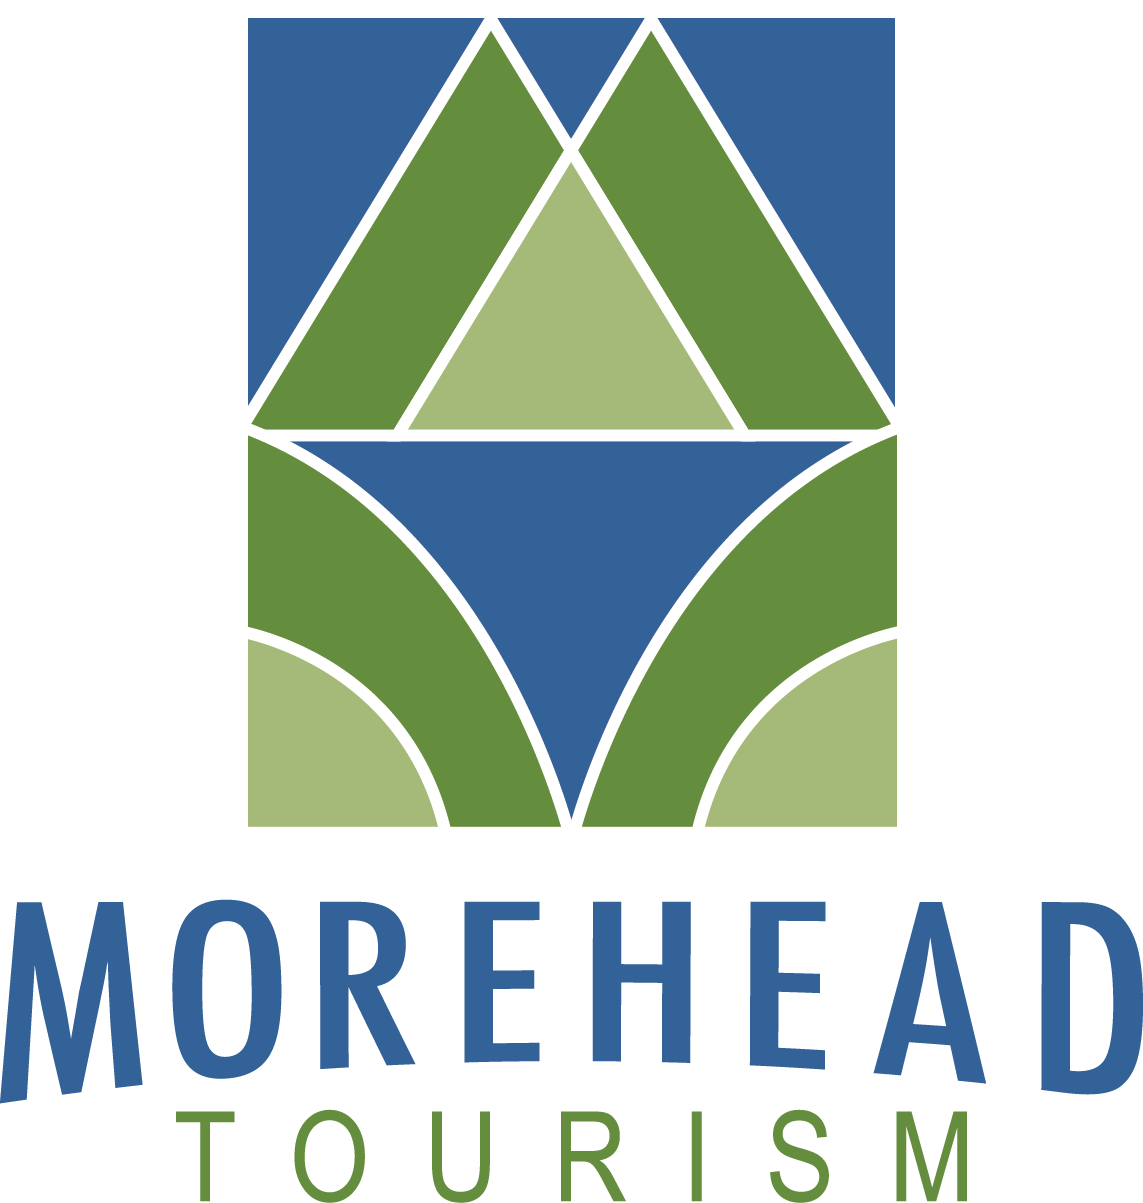 Local Business Image Is Morehead Tourism Commission